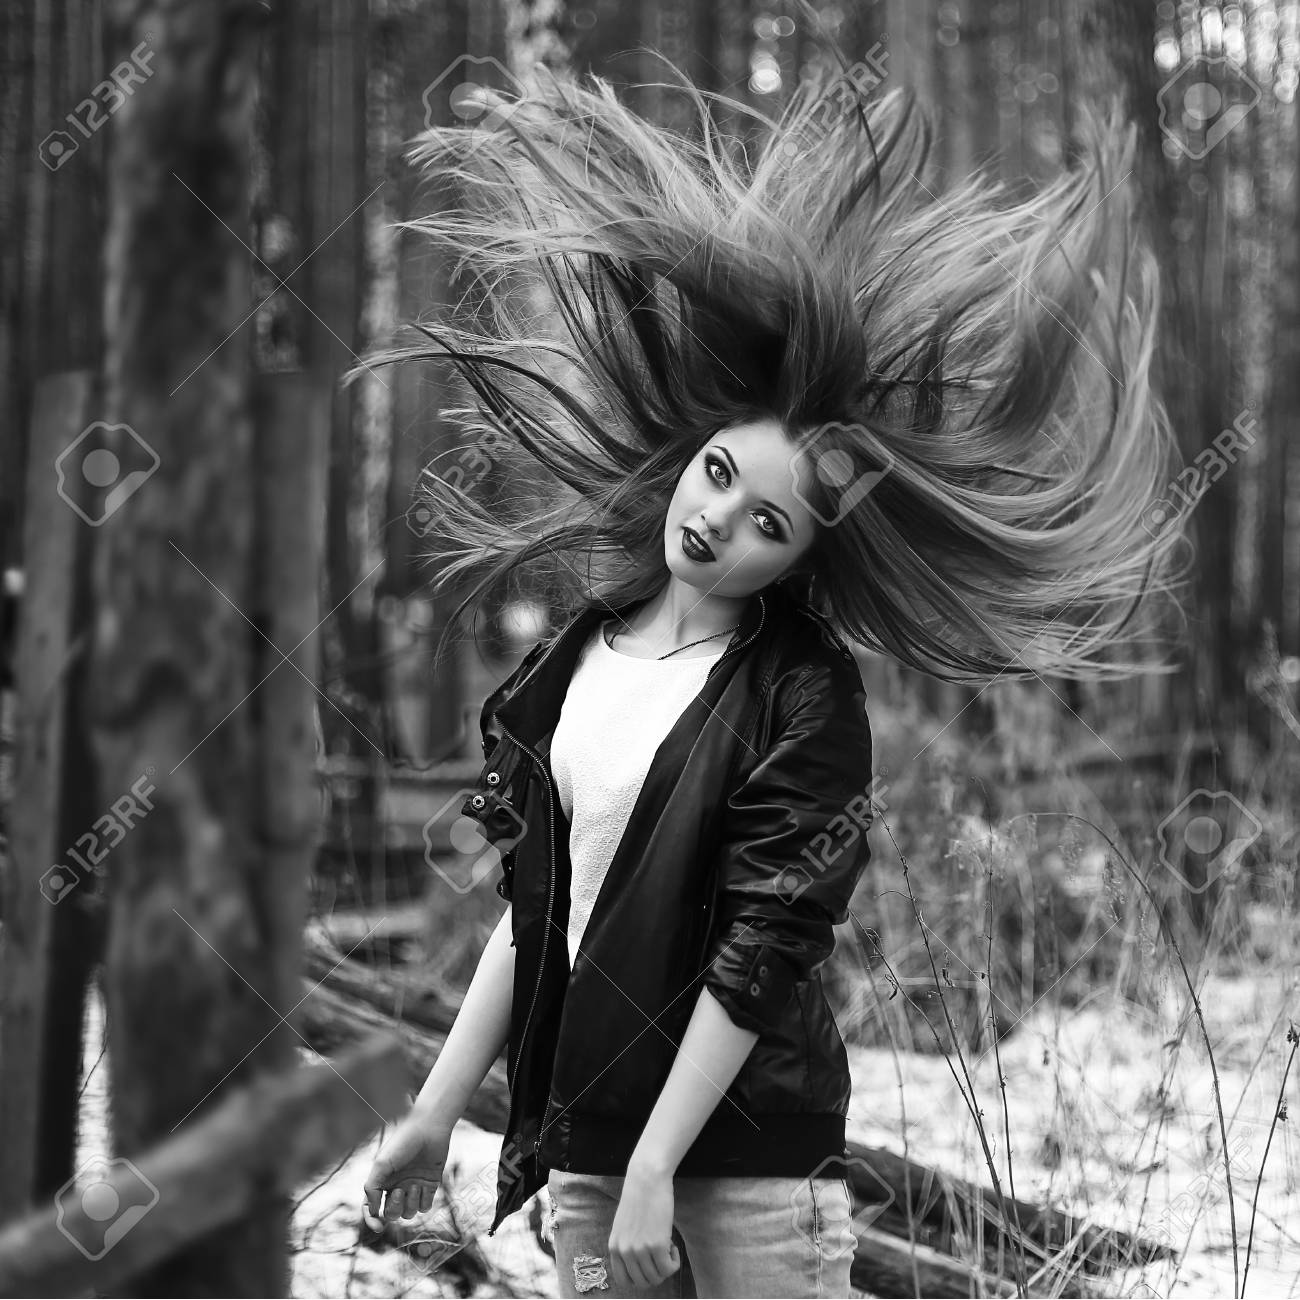 Stock photo the girl in a leather jacket the black and white photo poses in the wood